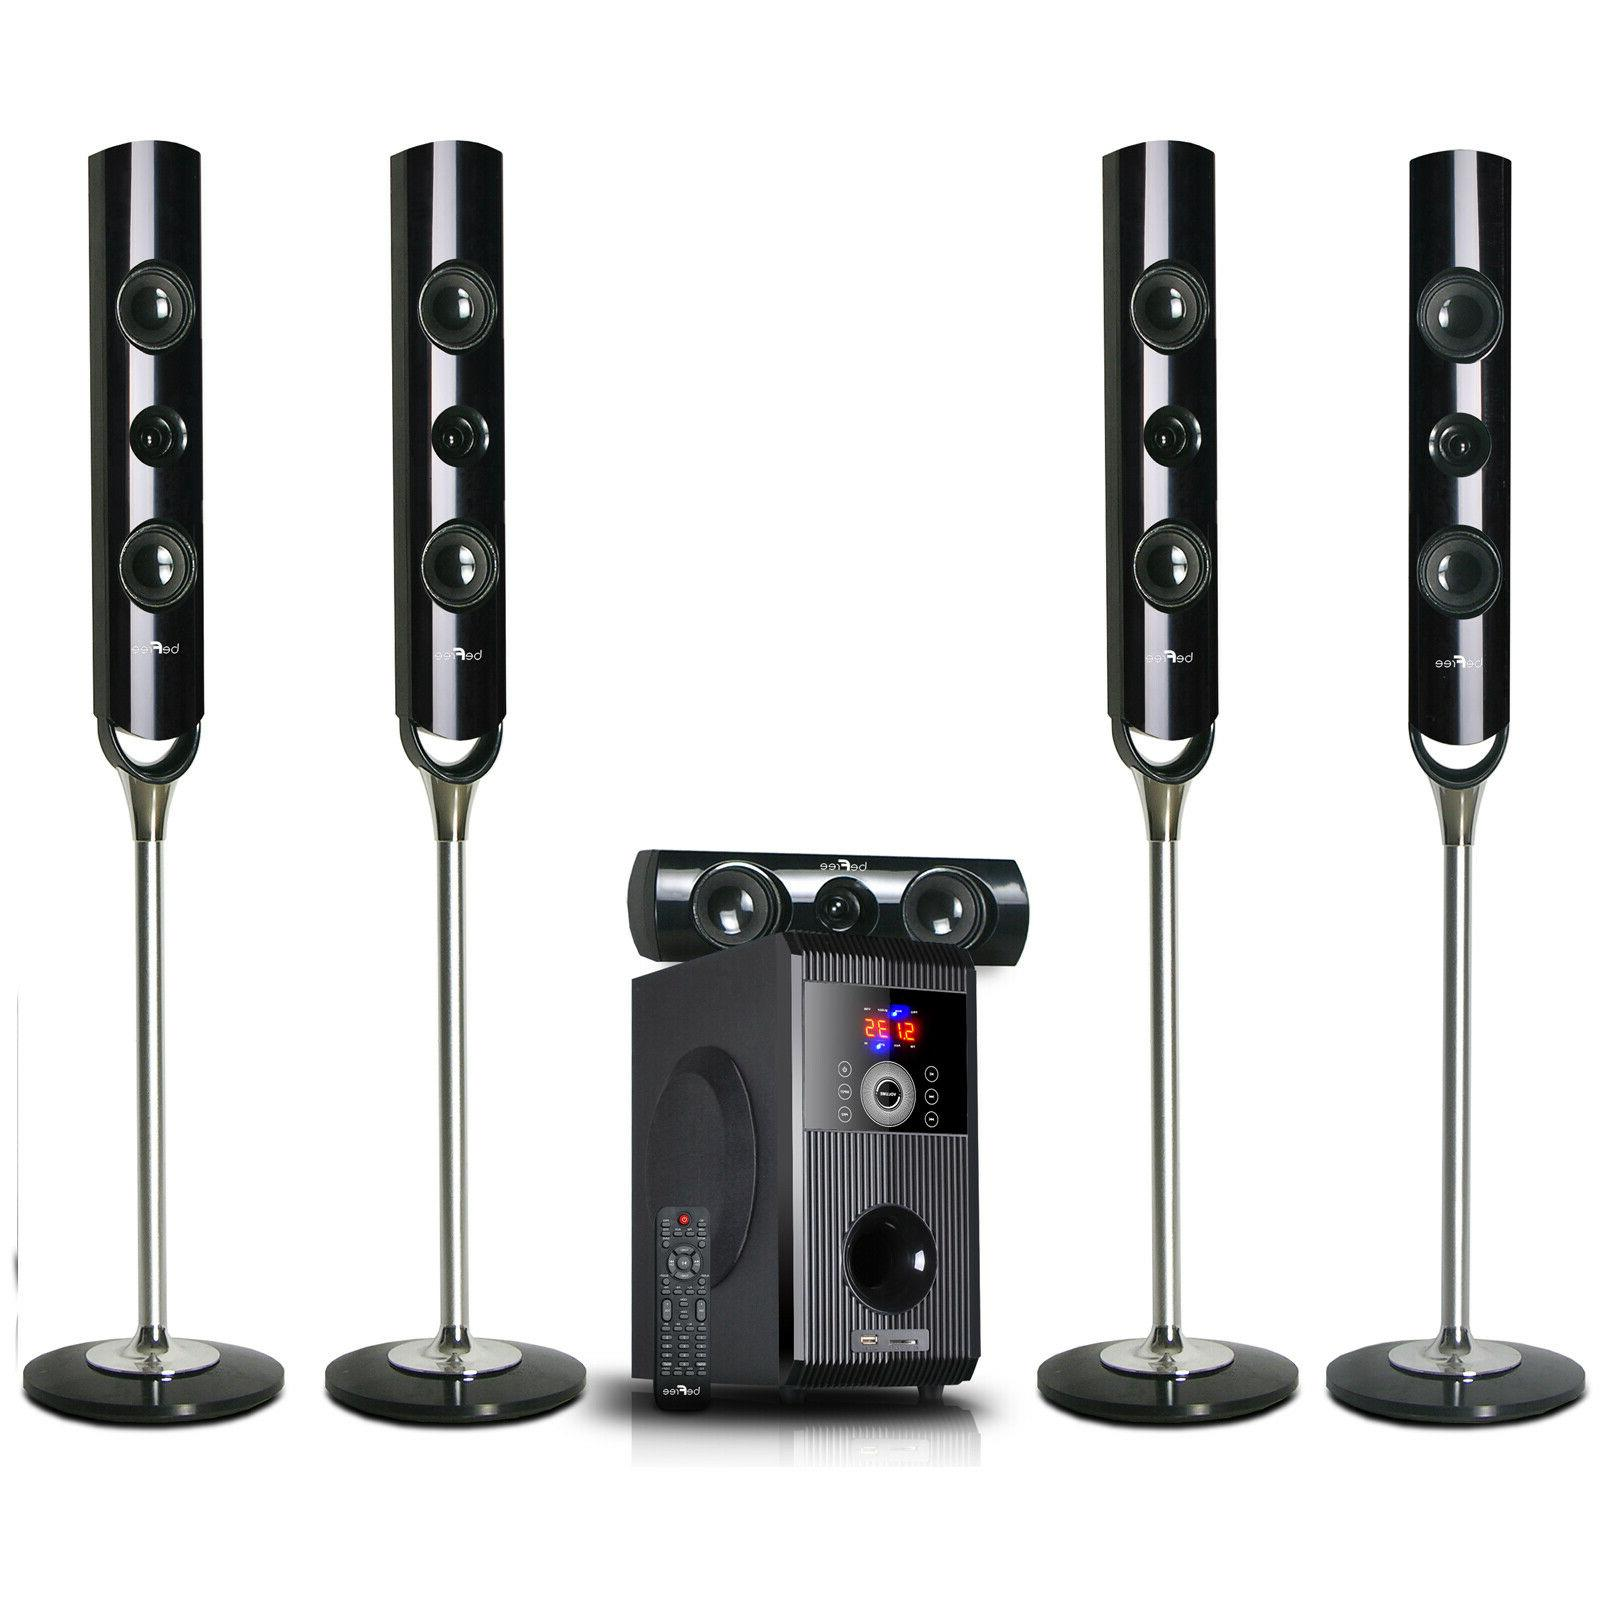 NEW 5.1 CHANNEL HOME SURROUND SOUND THEATER SPEAKER SYSTEM B